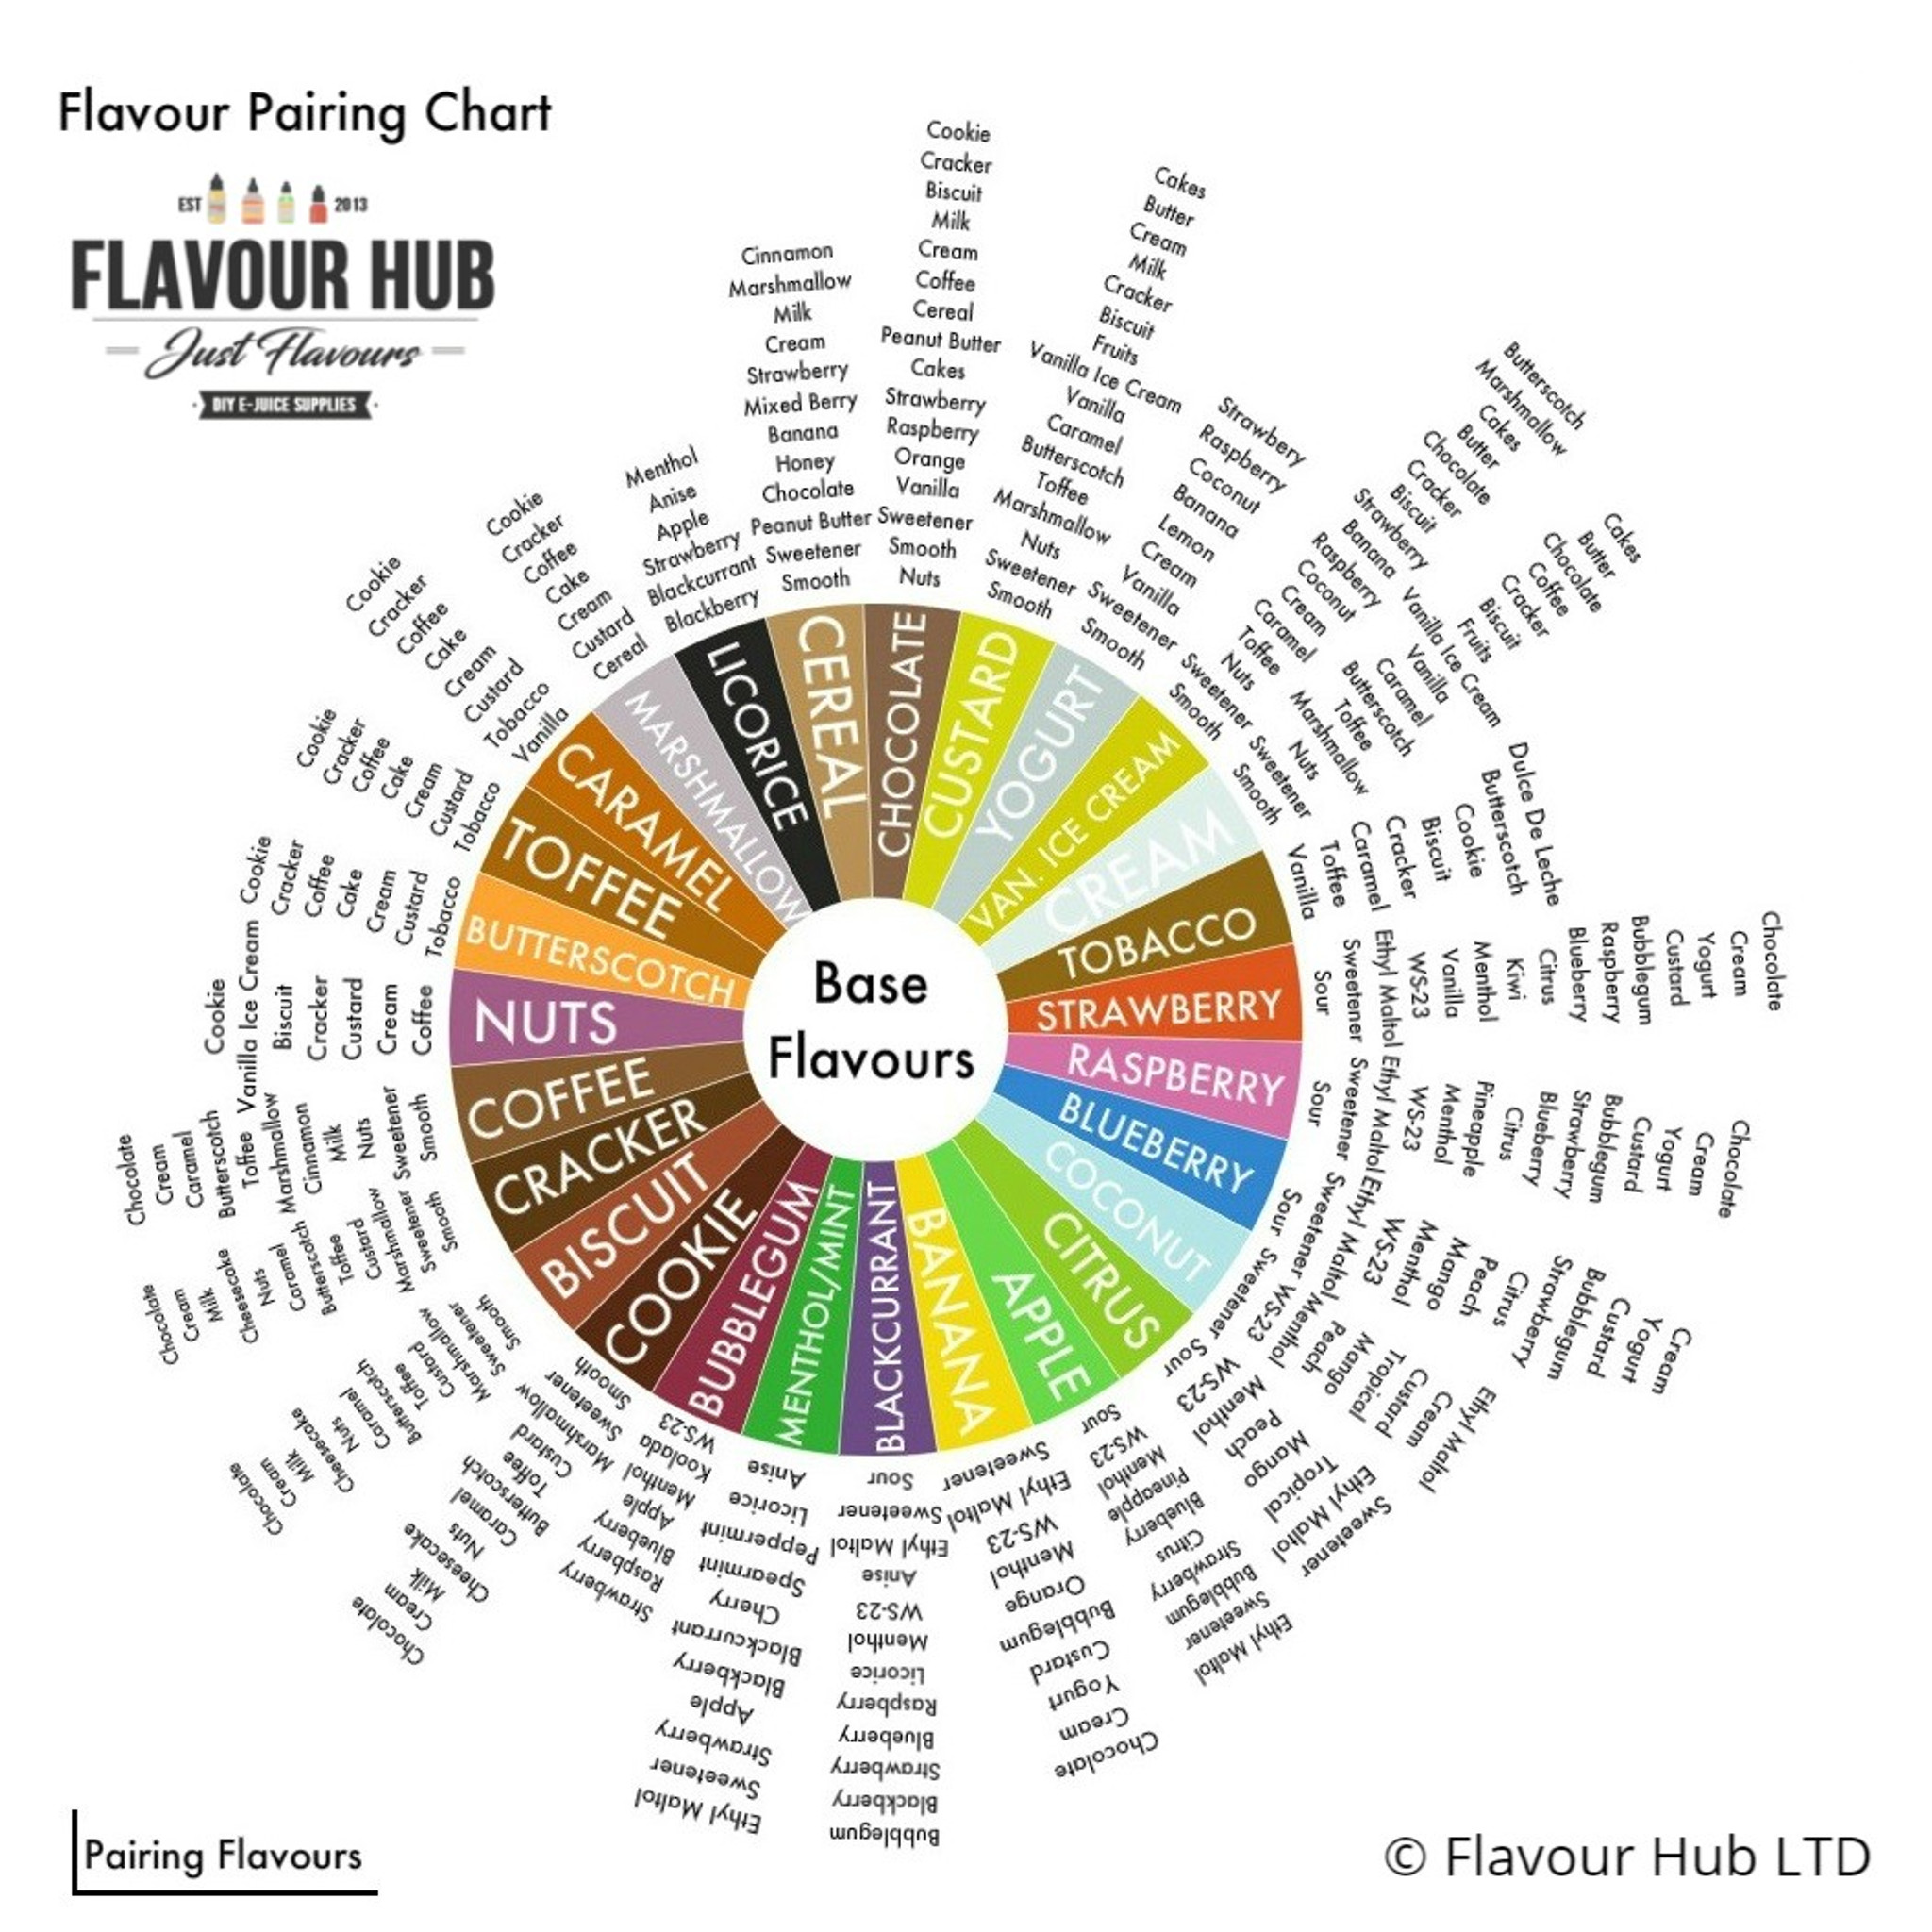 Flavour Pairing Chart